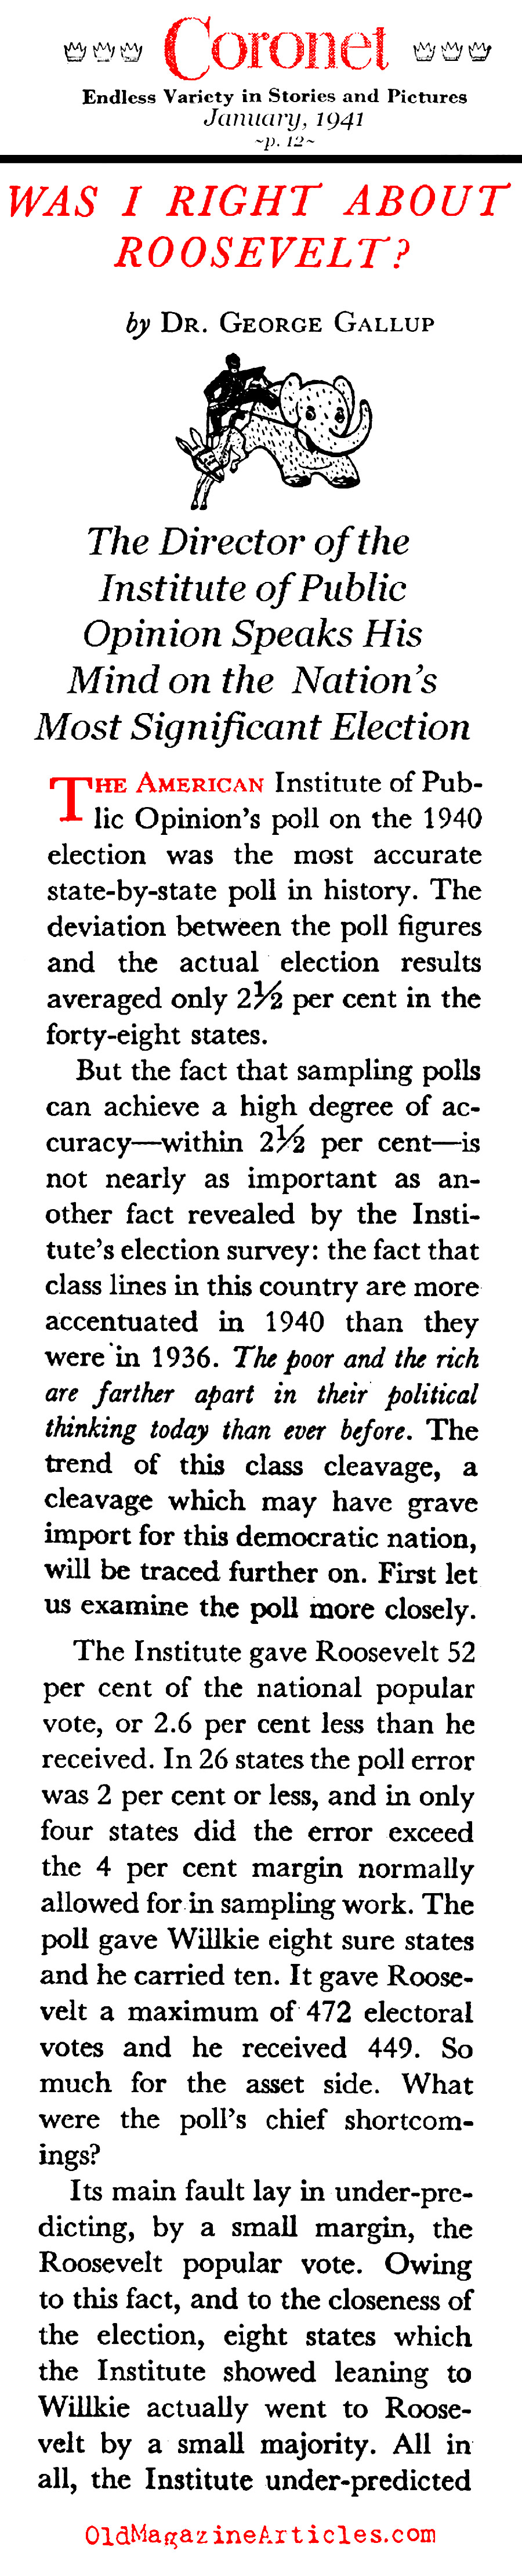 The 1940 Election Polls and FDR (Coronet Magazine, 1941)